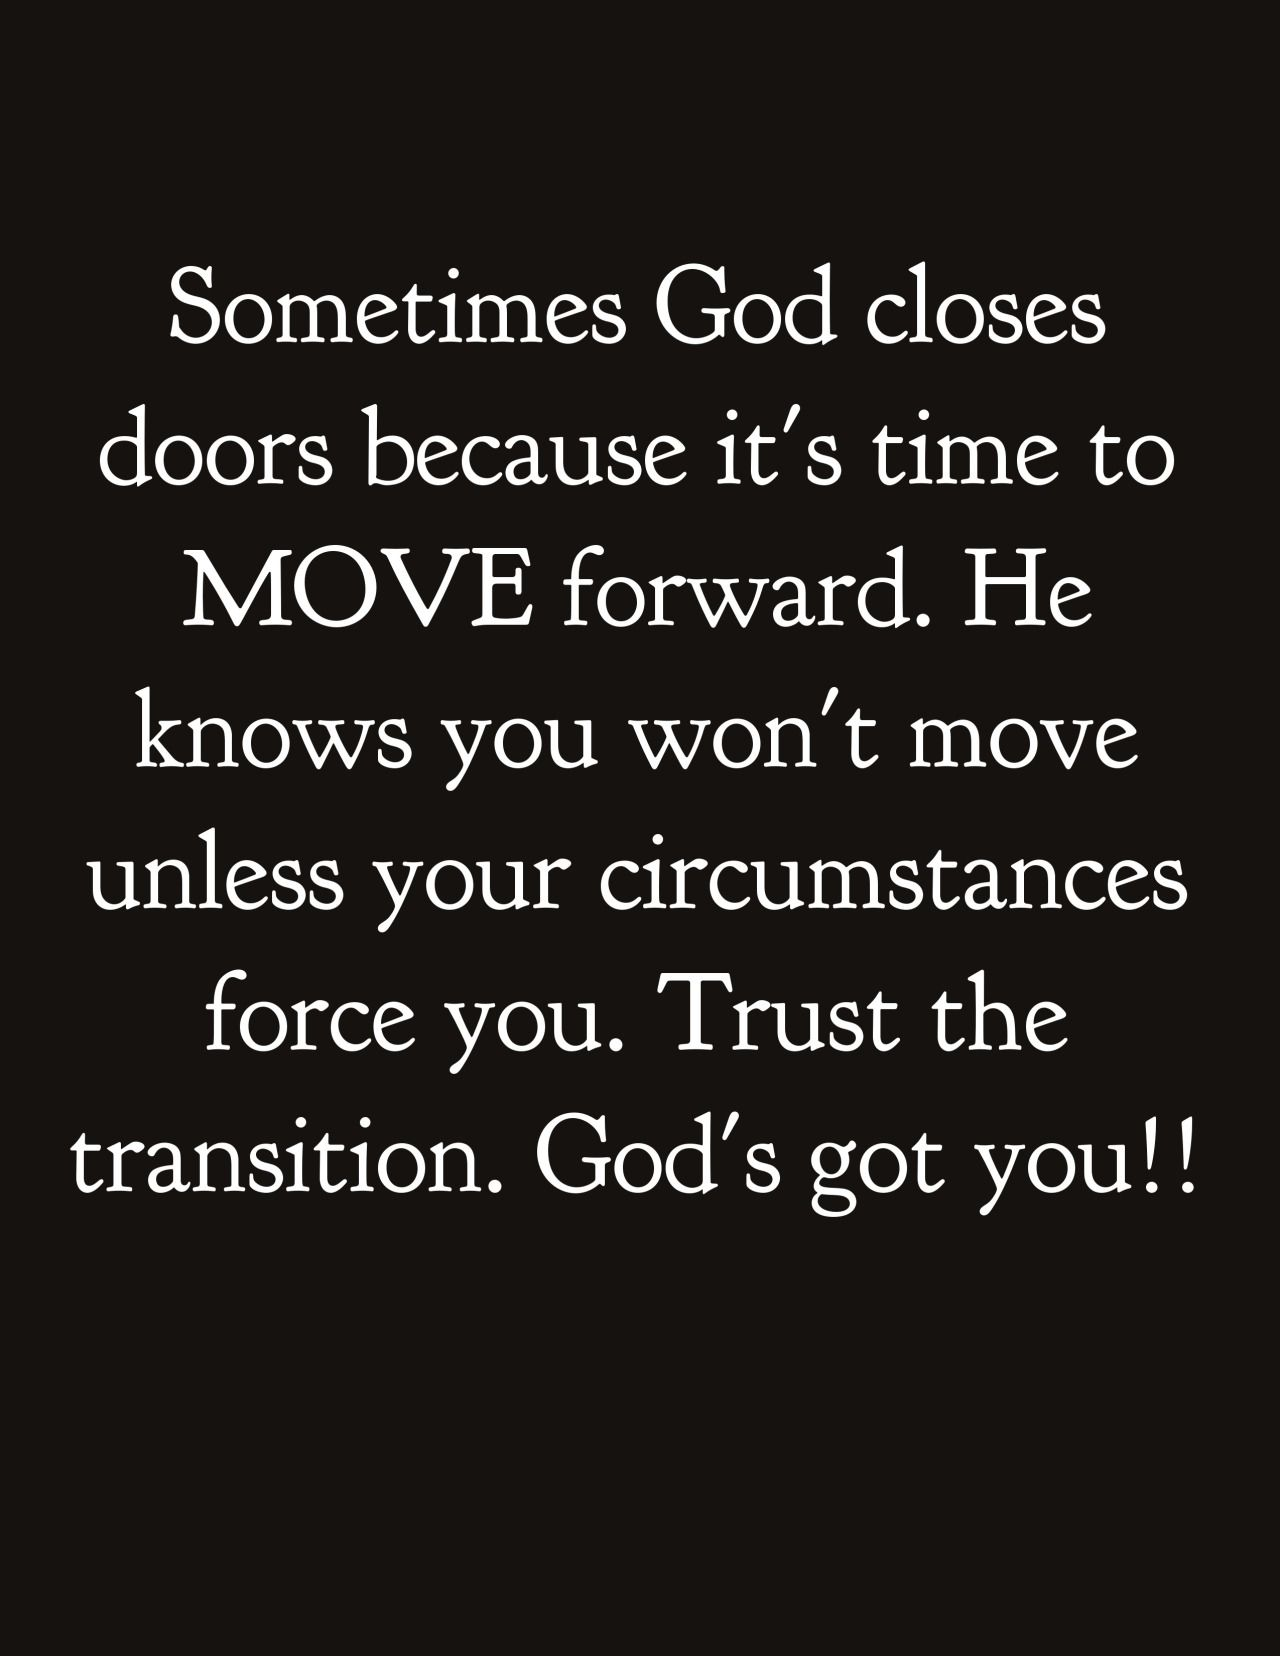 Sometimes God closes doors because it s time to MOVE forward He know you won t move unless your circumstances force you Trust the transition